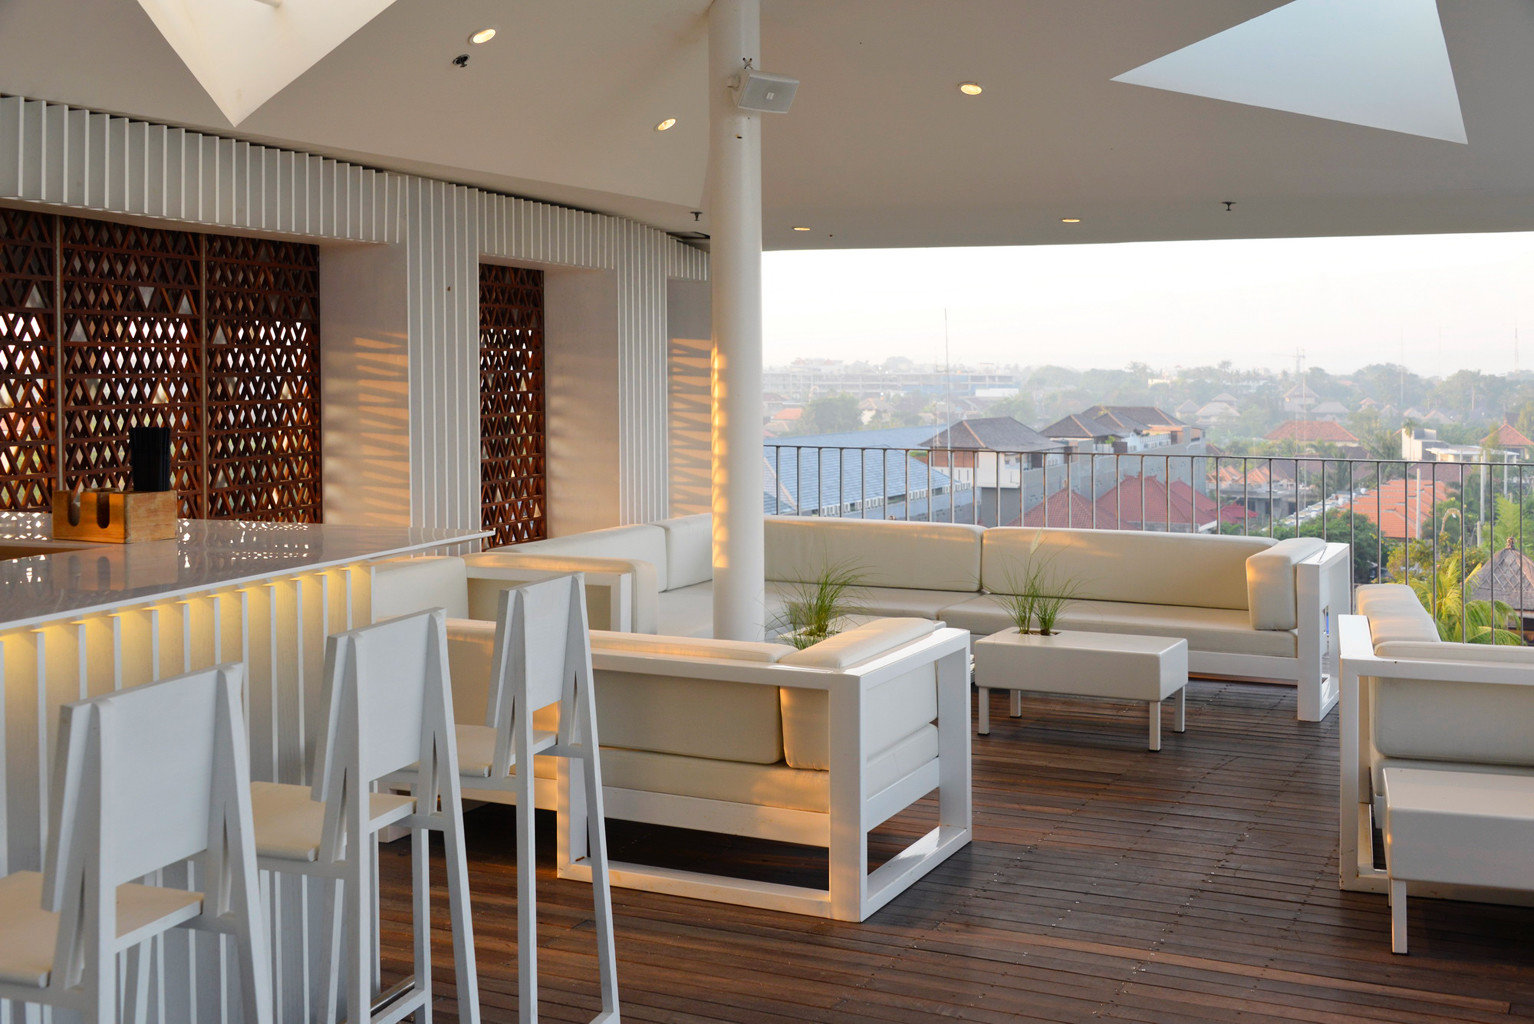 Bar City Dining Drink Eat Luxury Scenic views chair property white home living room outdoor structure Lobby Deck